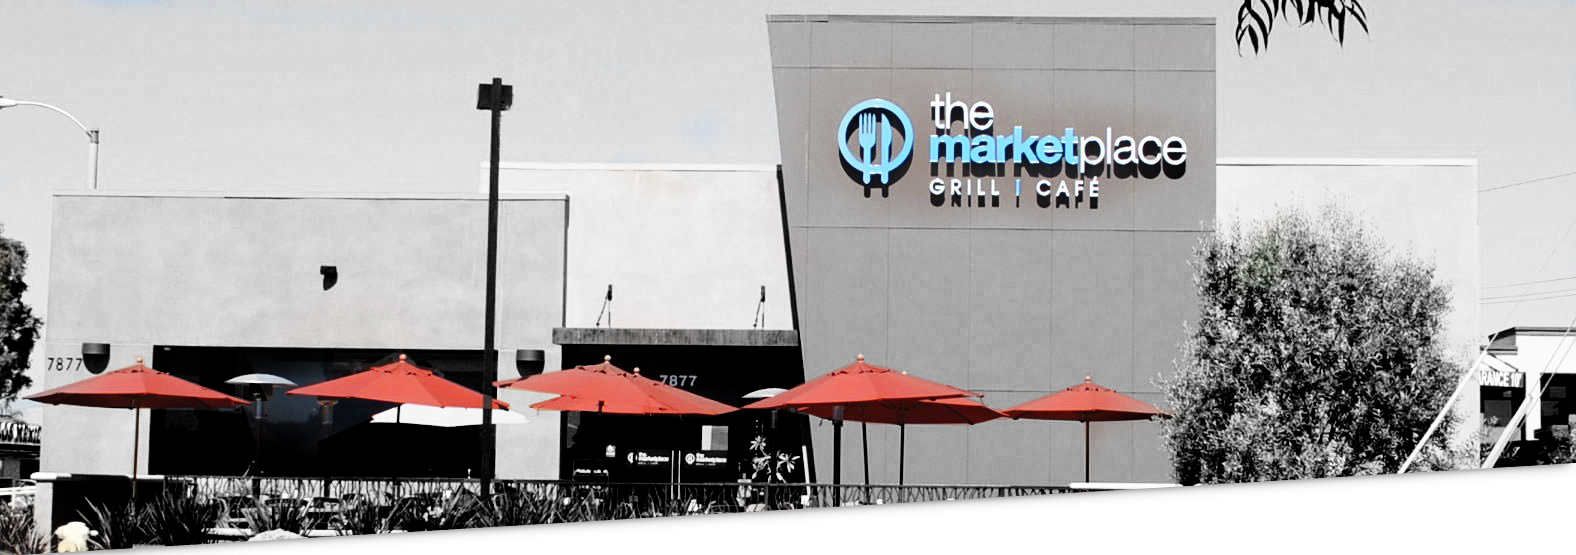 The Marketplace Downey Location Picture